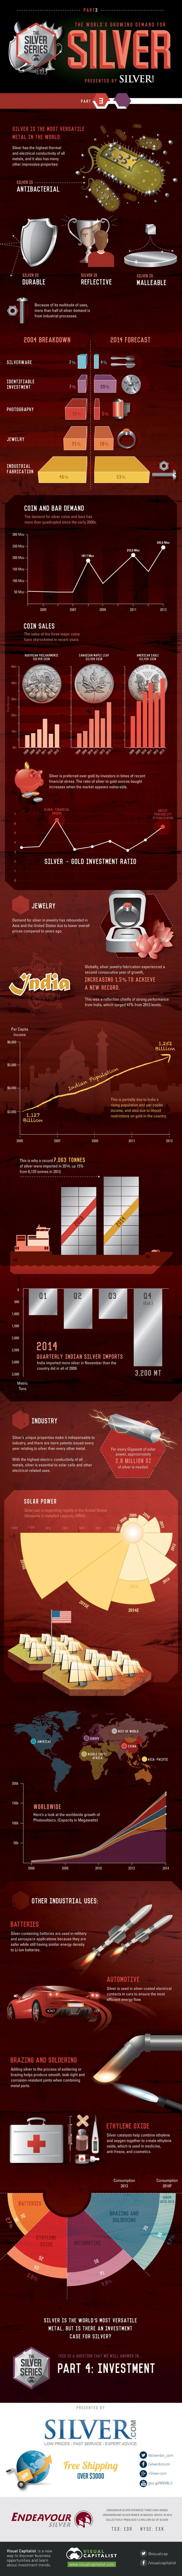 [INFOGRAPHIC] Appetite for silver: The world's growing demand   Operations   Mining Global